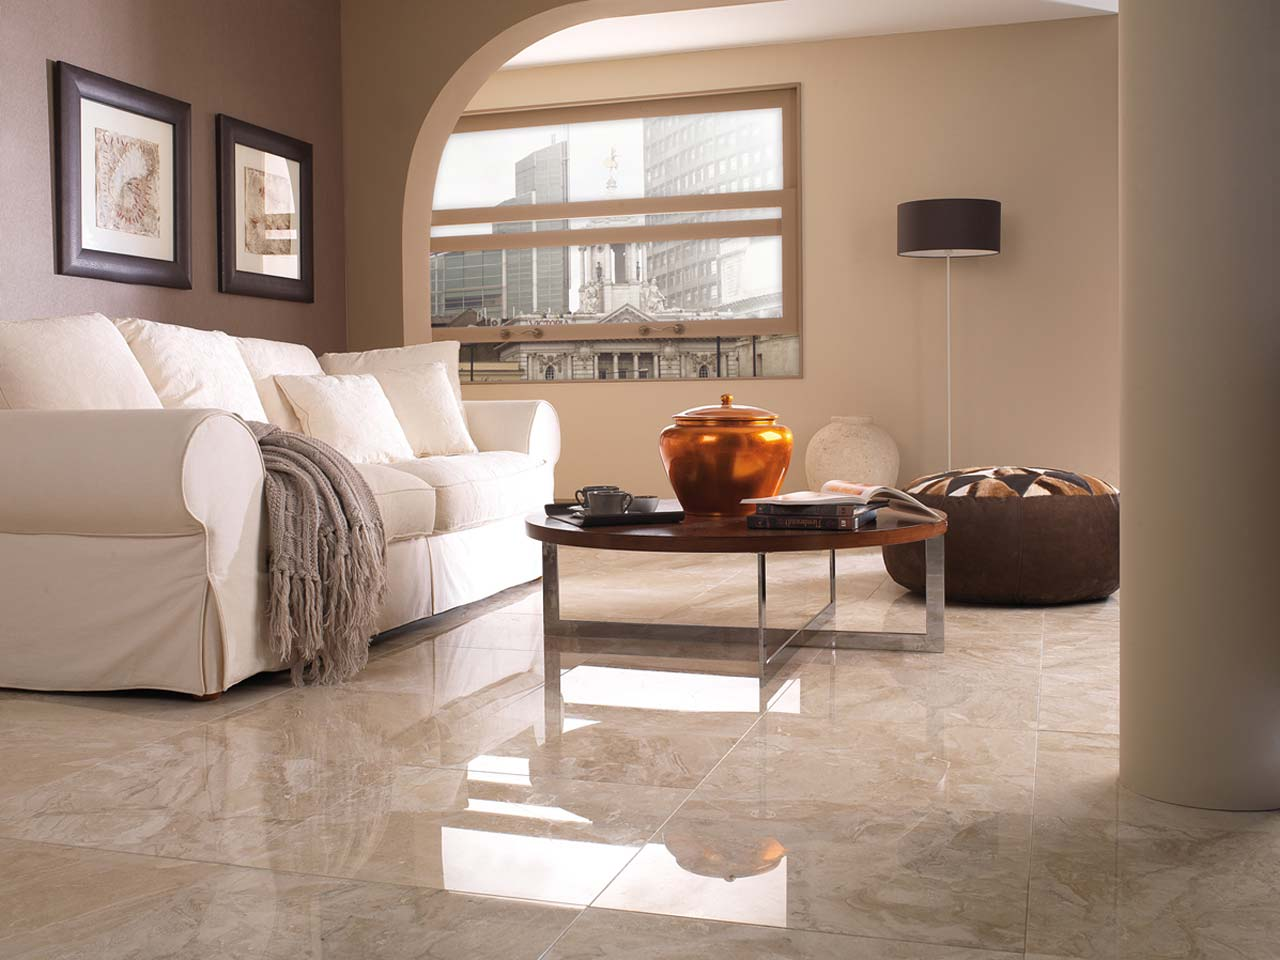 How To Clean And Polish Marble Floors The Econcierge